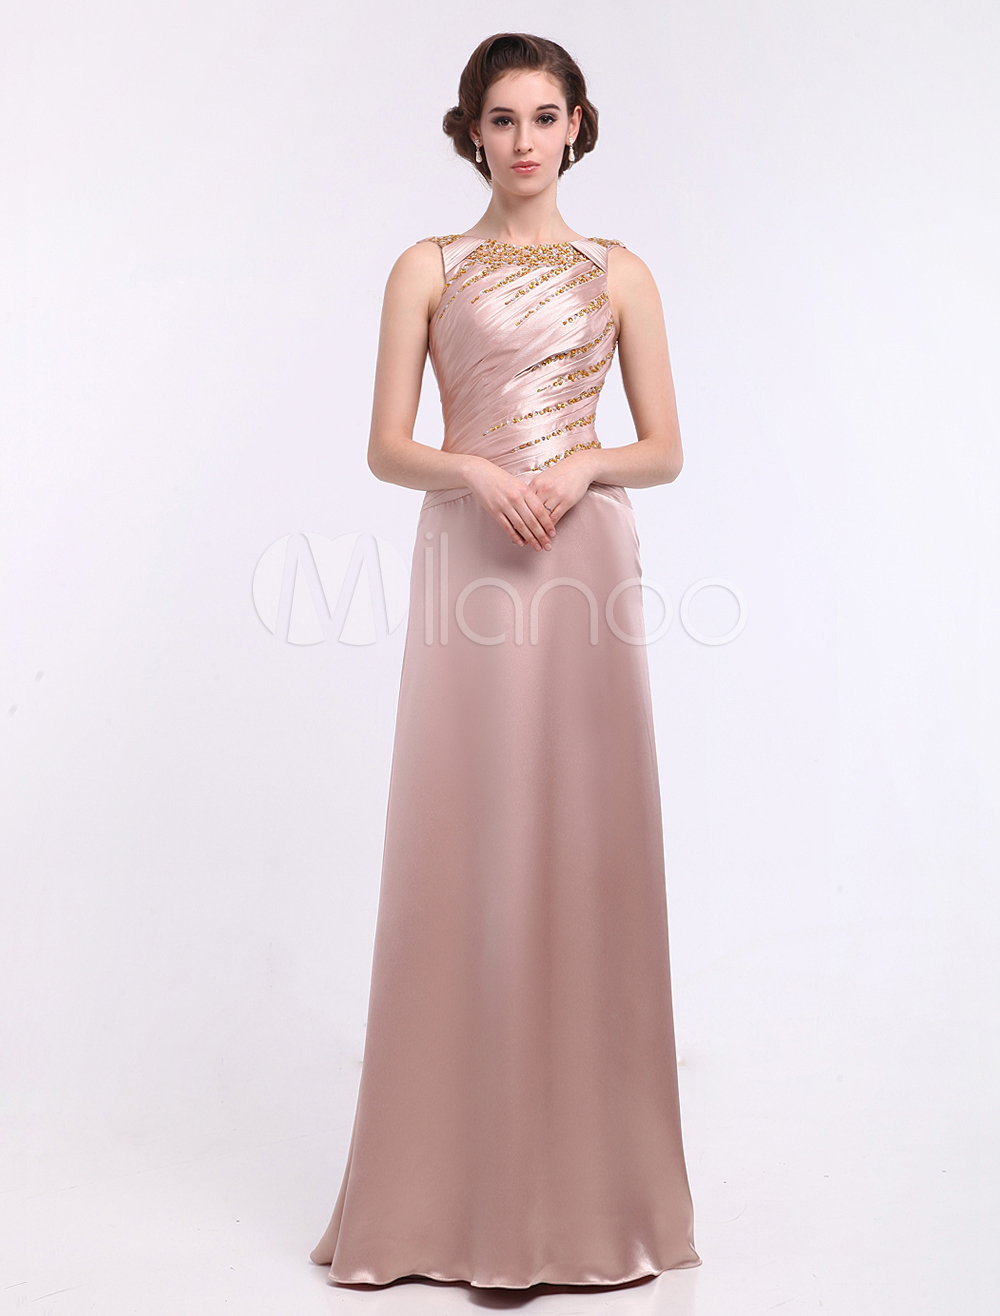 Buy Nude Sheath Jewel Neck Ruched Backless Elastic Silk Like Satin Mother of the Bride Dress Milanoo for $144.89 in Milanoo store